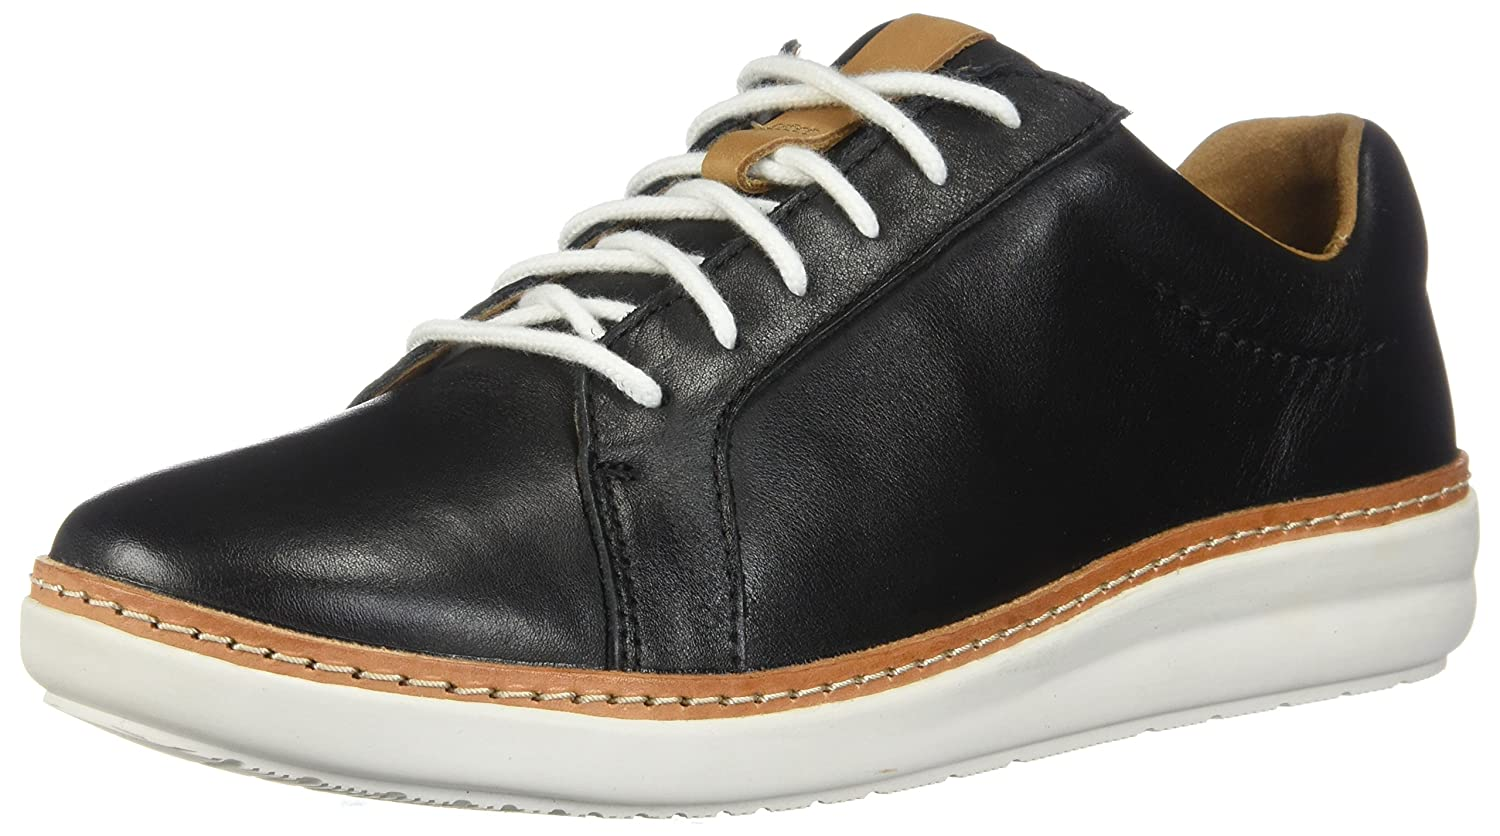 CLARKS Womens Amberlee Rosa Sneaker B0762WB48W 10 D US|Black Leather